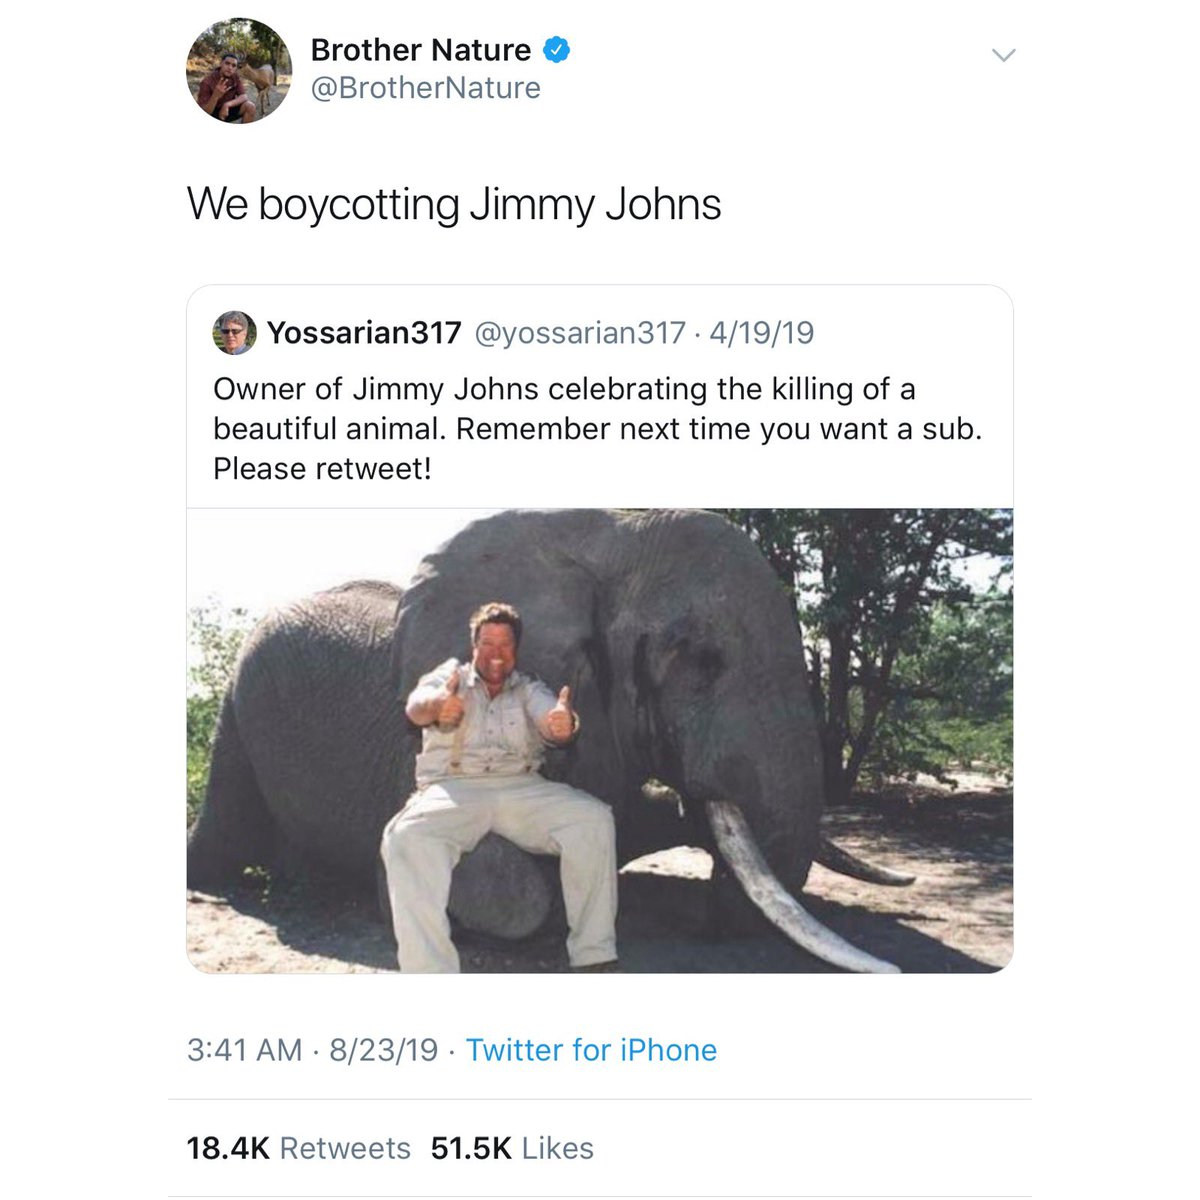 Few times a year this pic of the founder of Jimmy Johns goes viral. It almost always starts trending and everyone is shocked!   Tons of retweets!   But this pic is from years ago and meanwhile 🐘 are facing a real crisis & when people tweet about that, it gets little attention